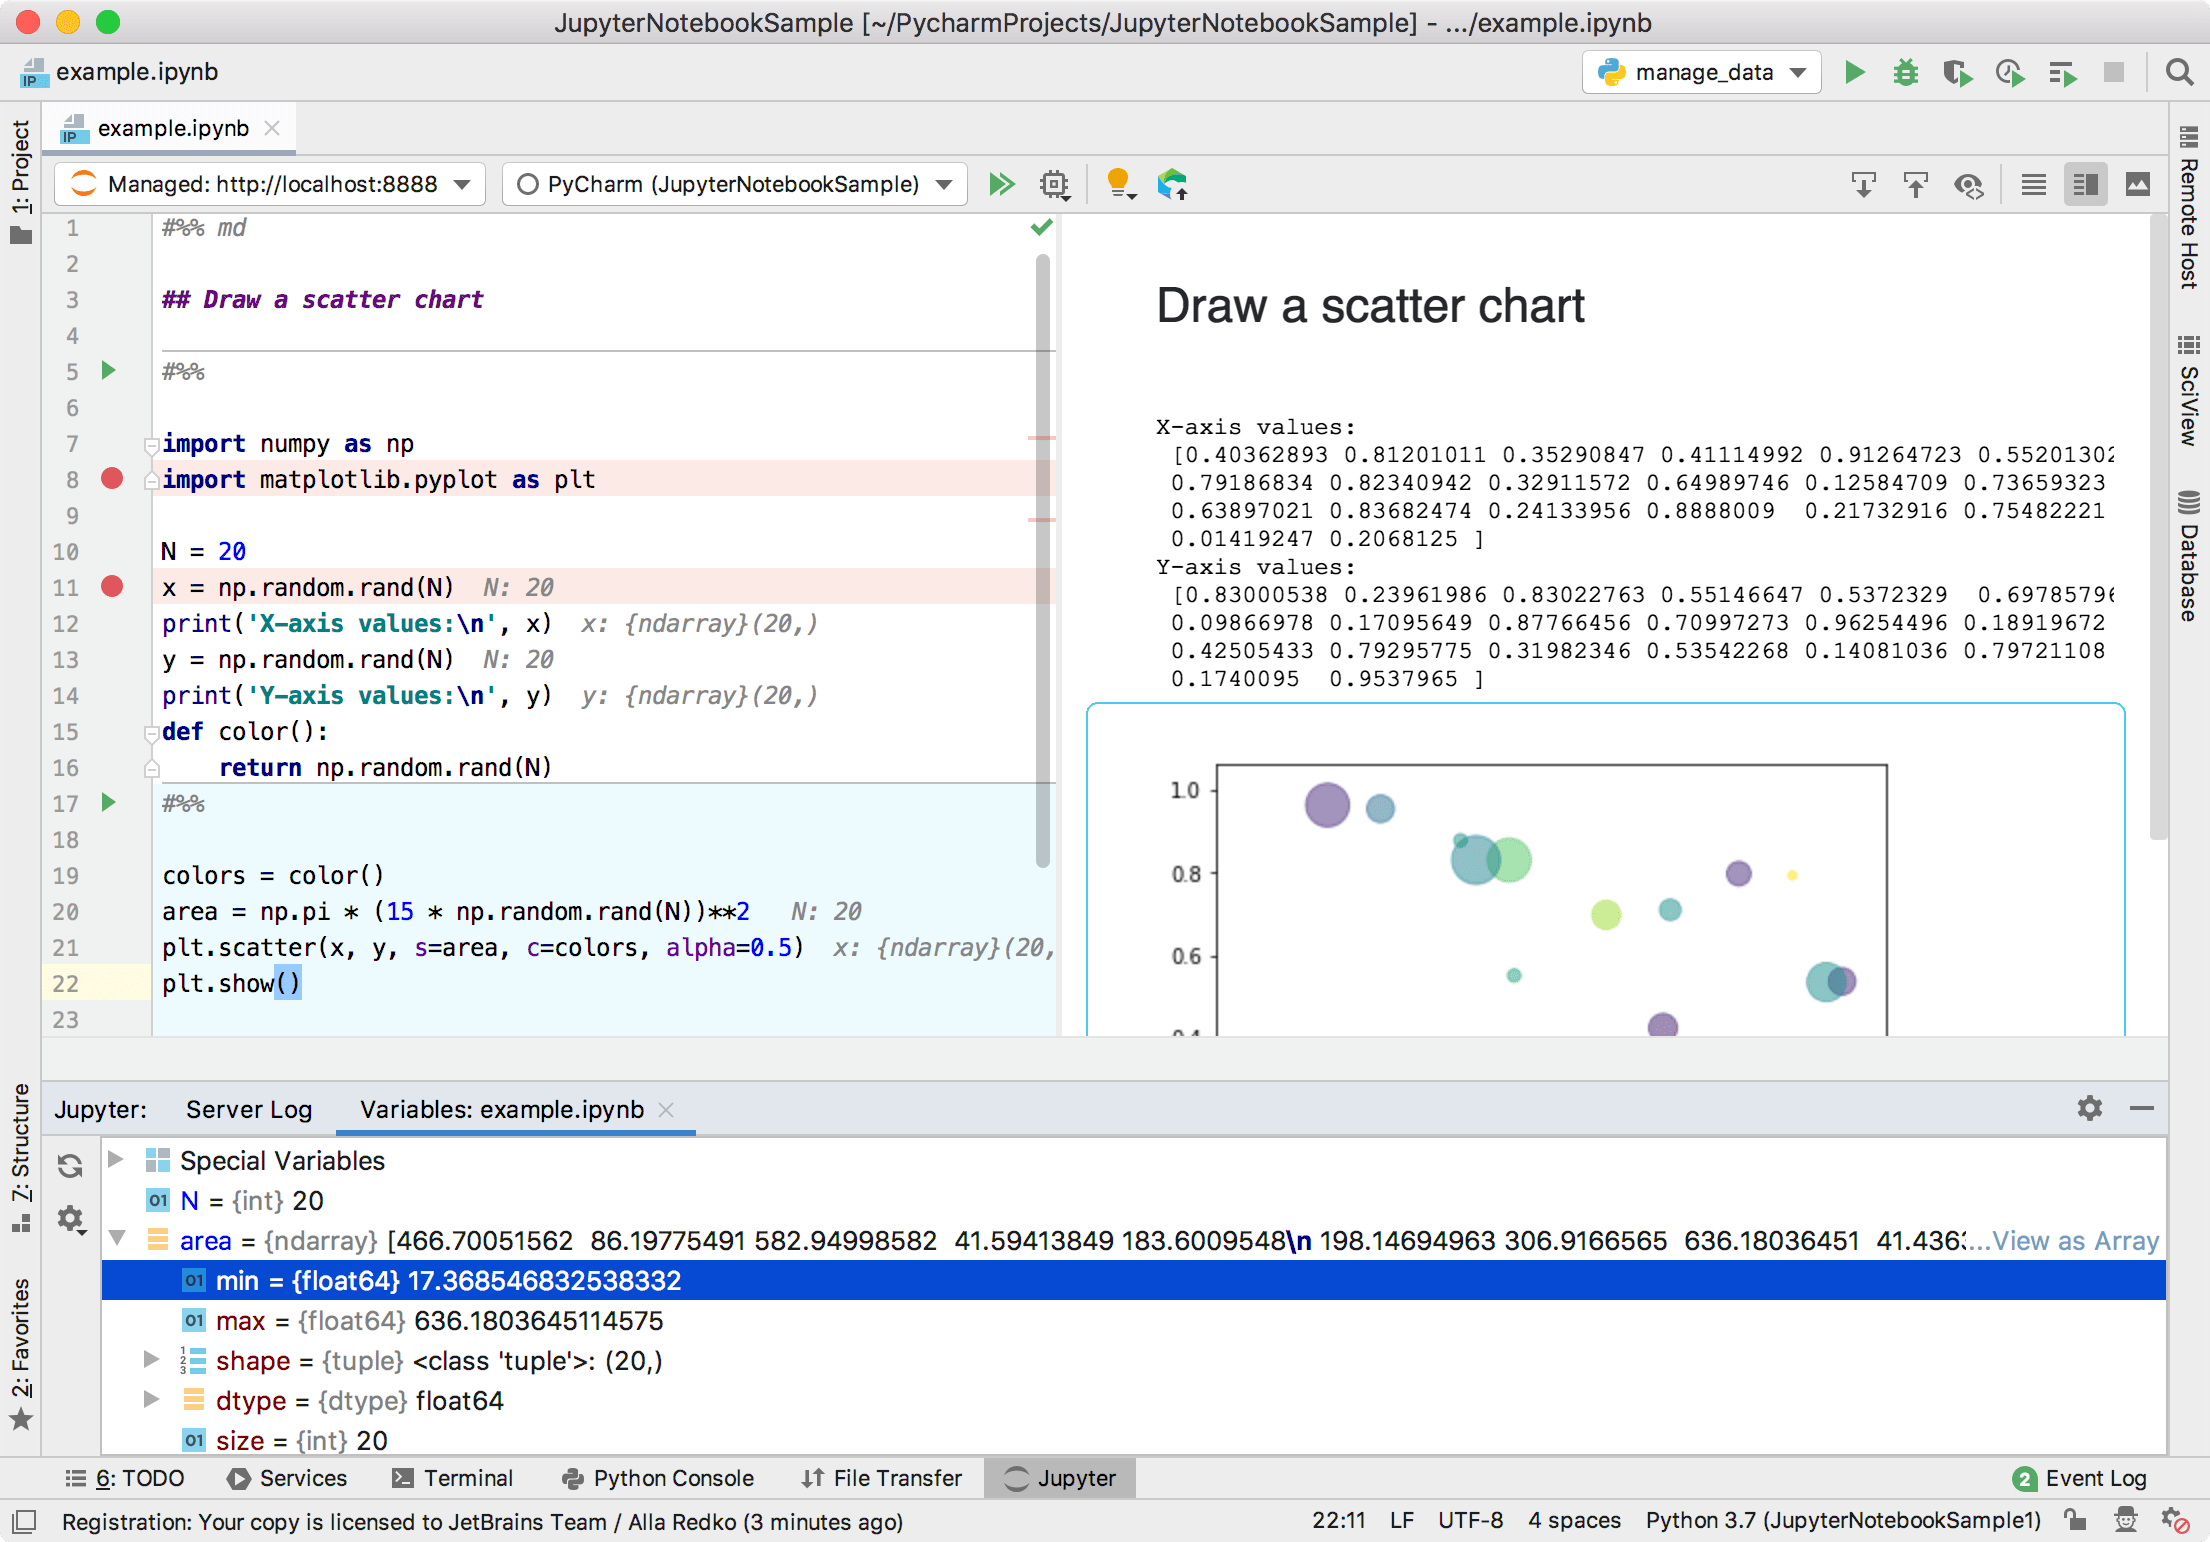 Jupyter Notebook Support - Help | PyCharm